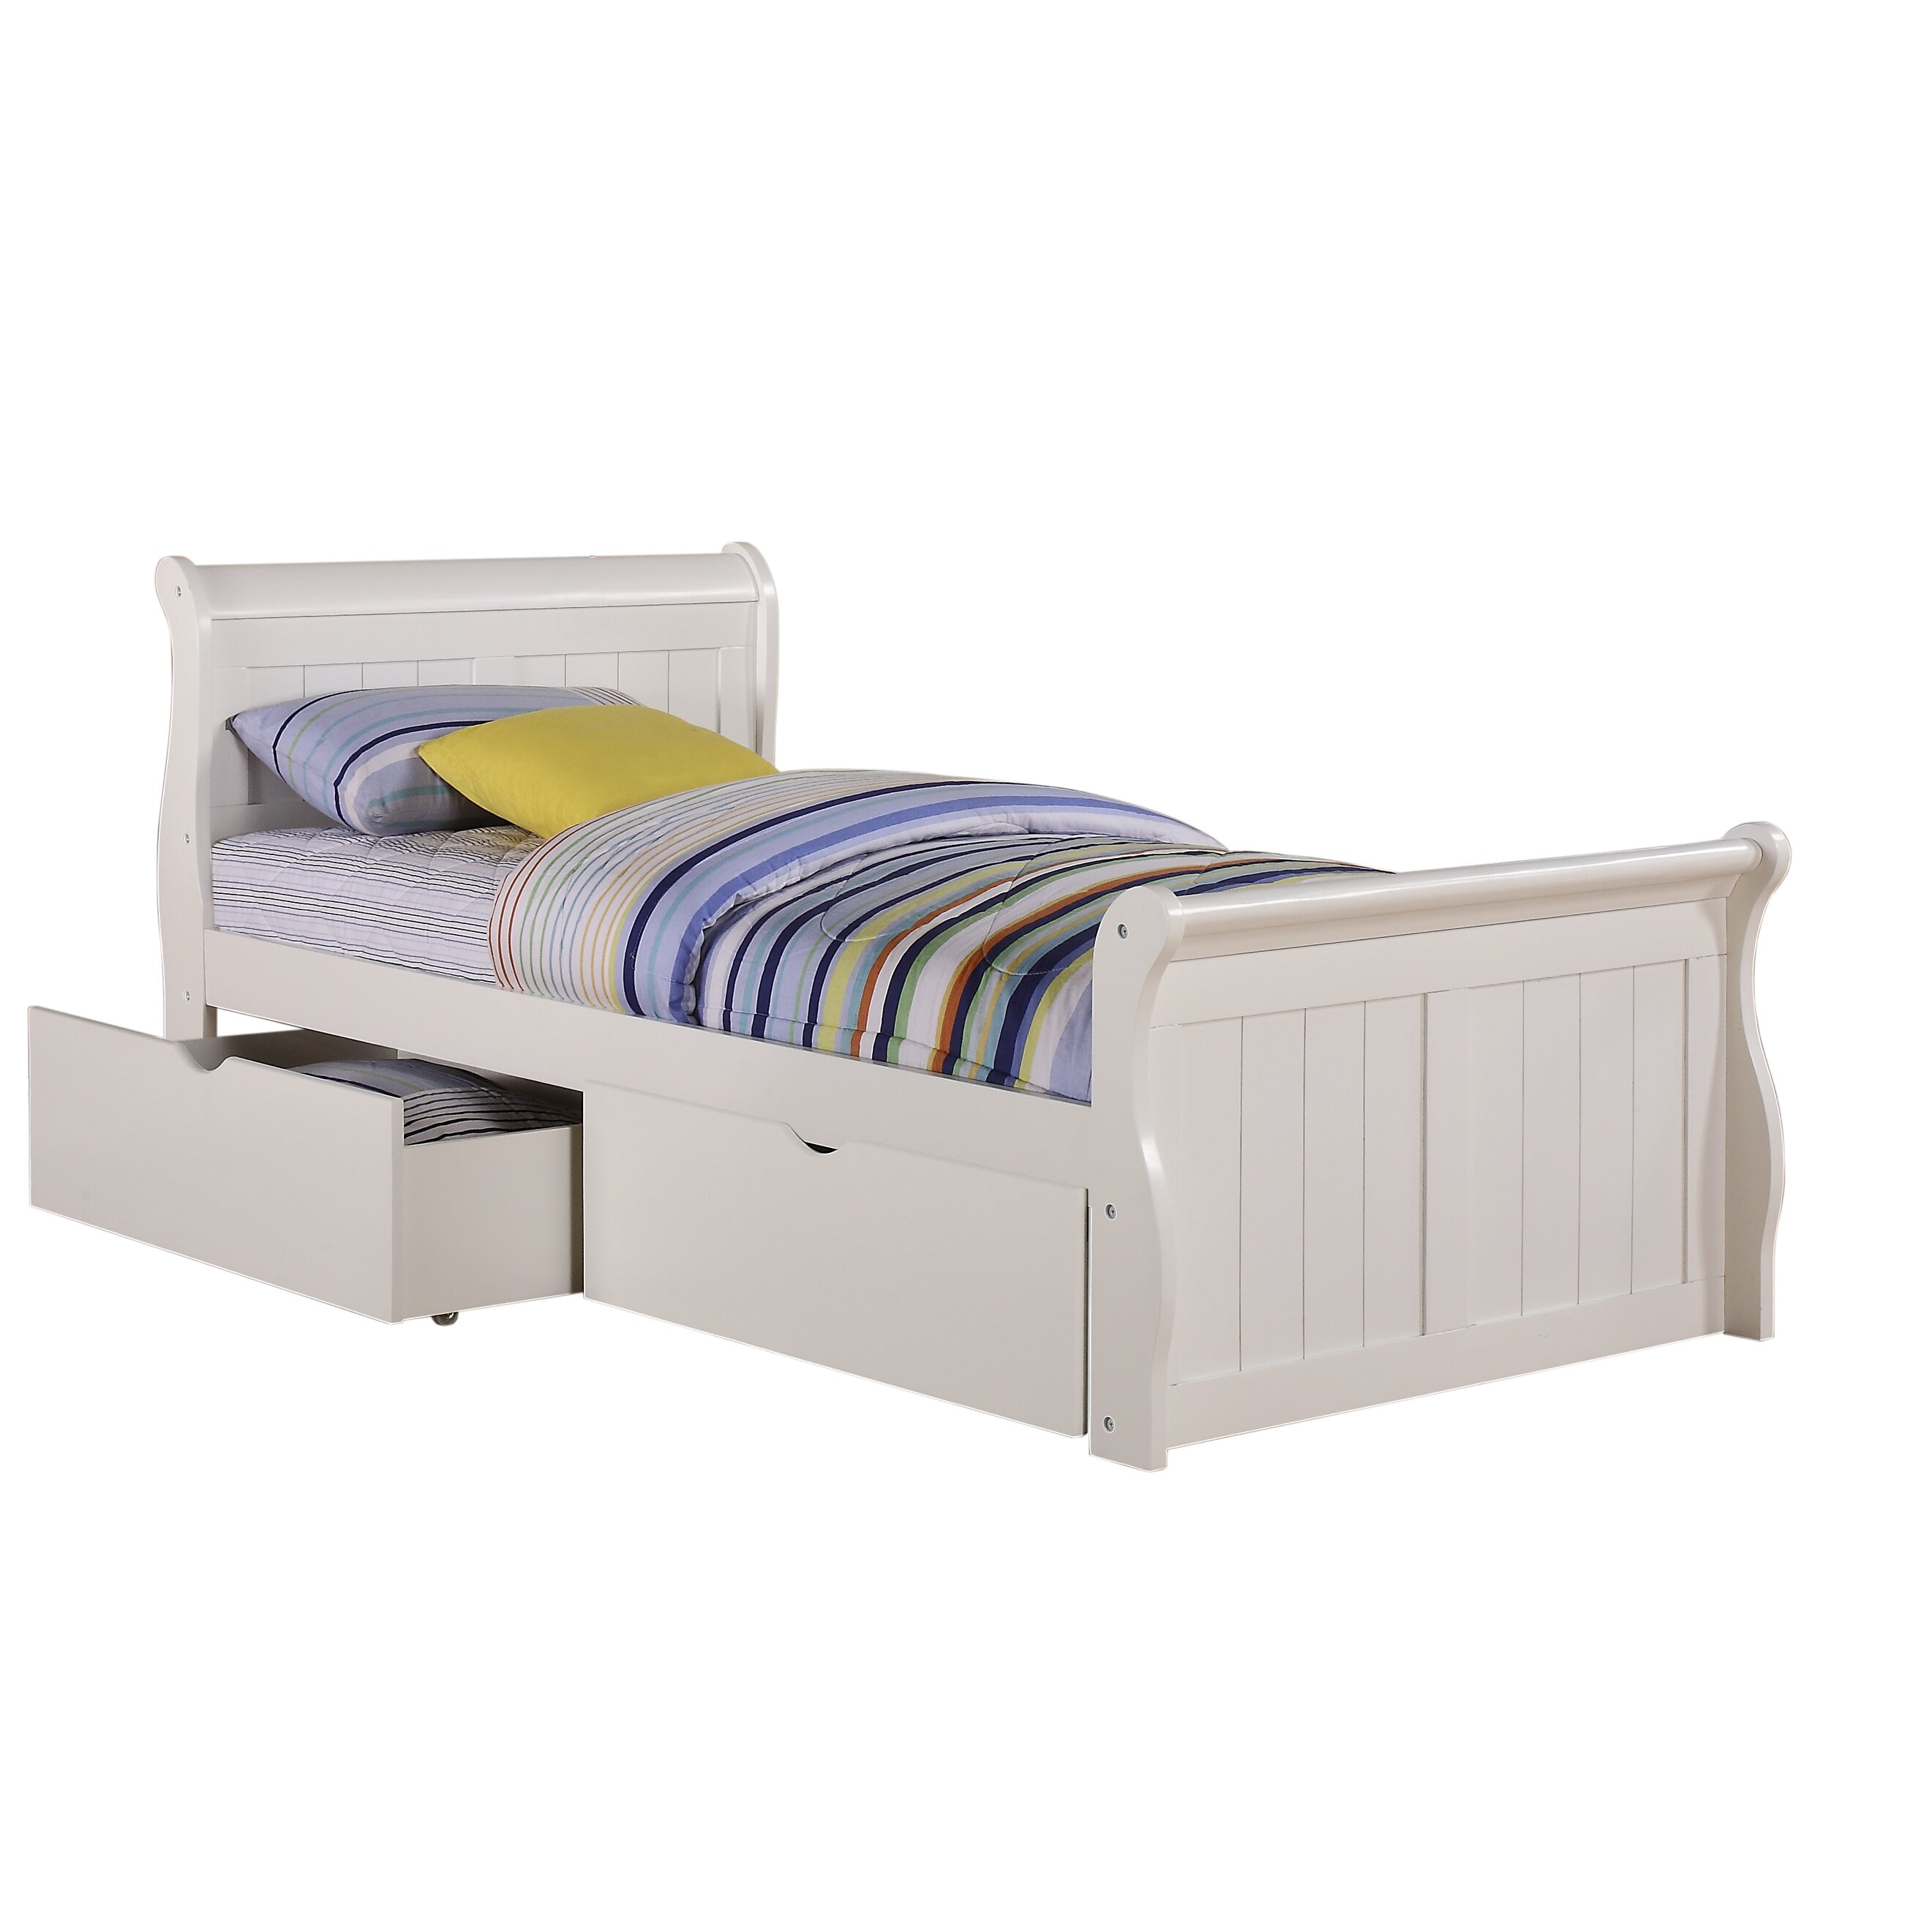 Donco Kids Twin Sleigh Bed